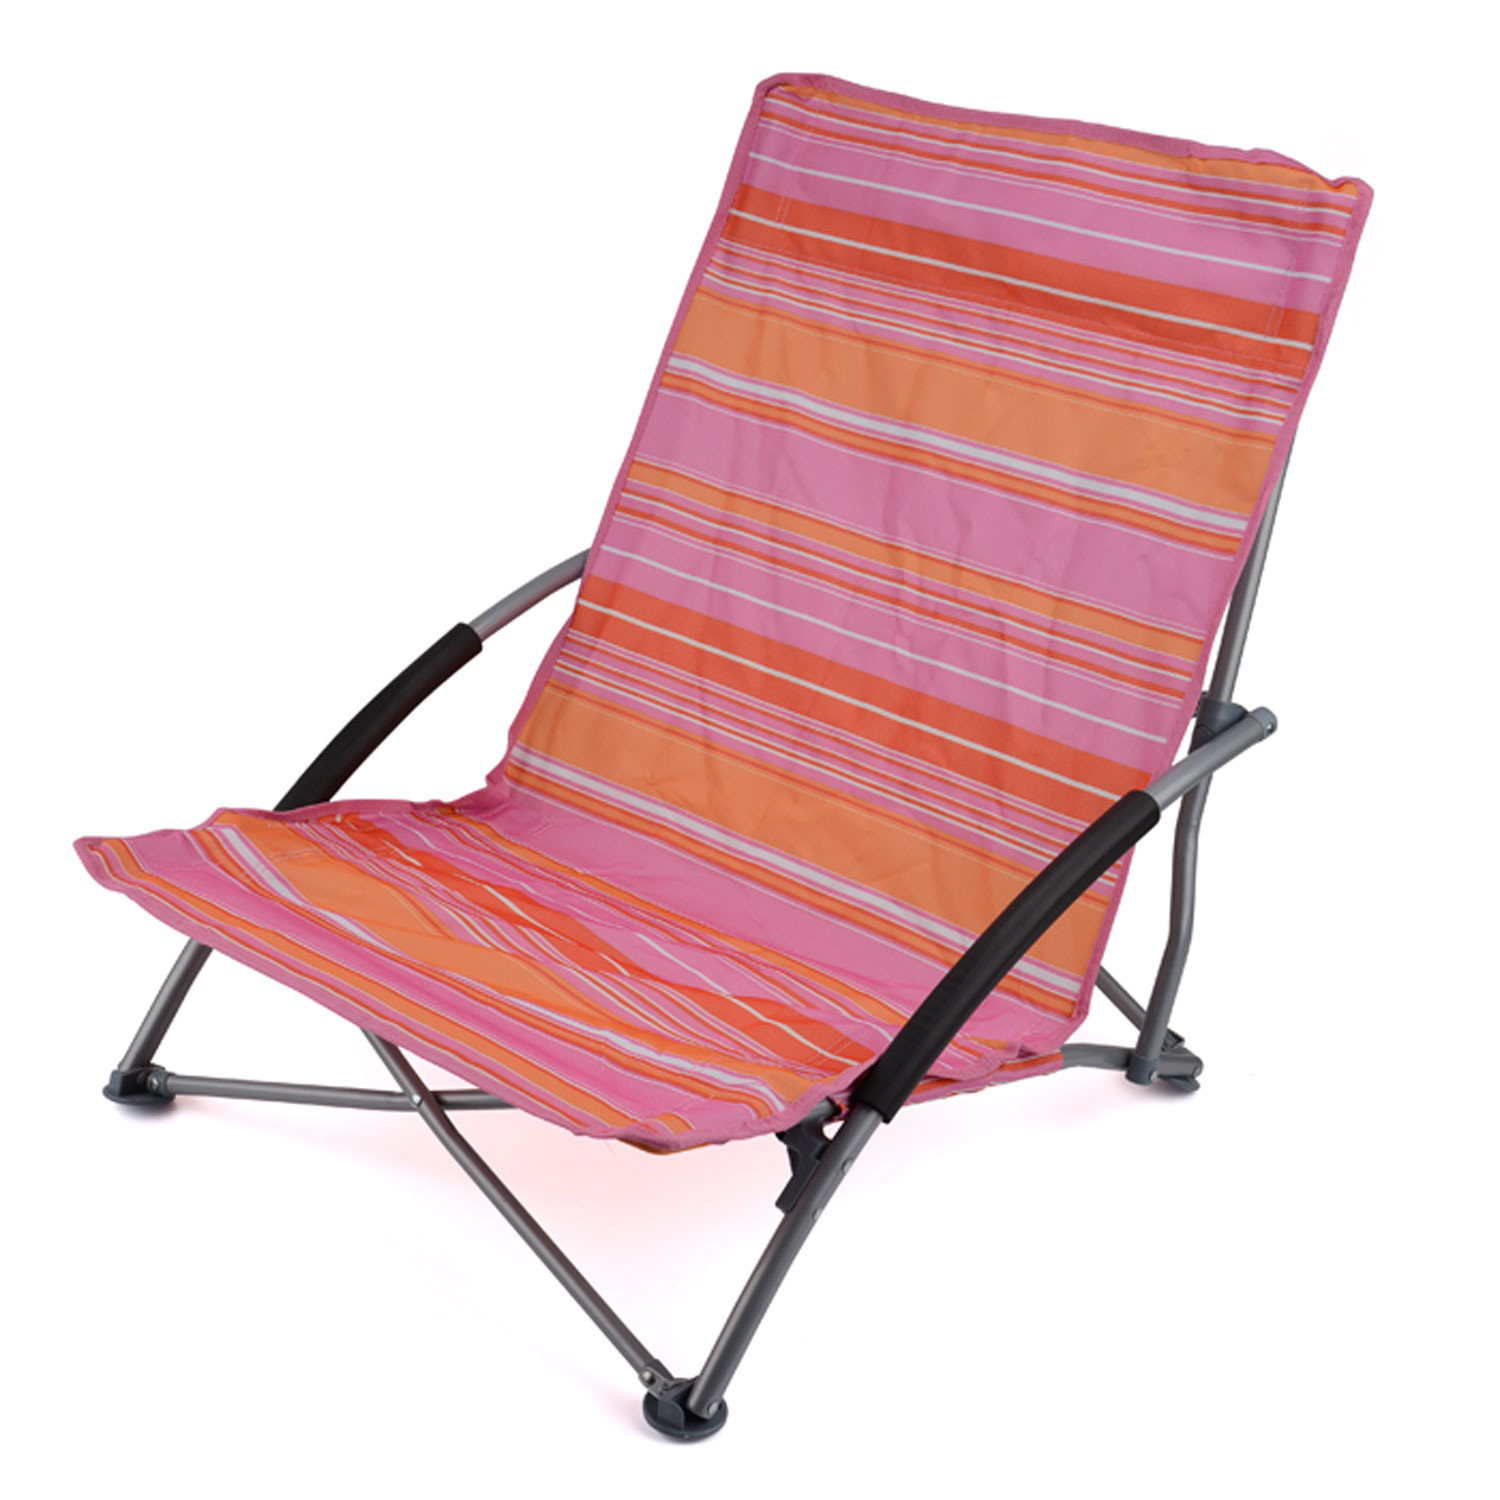 Outdoor Portable Chairs Low Folding Beach Chair Lightweight Portable Outdoor